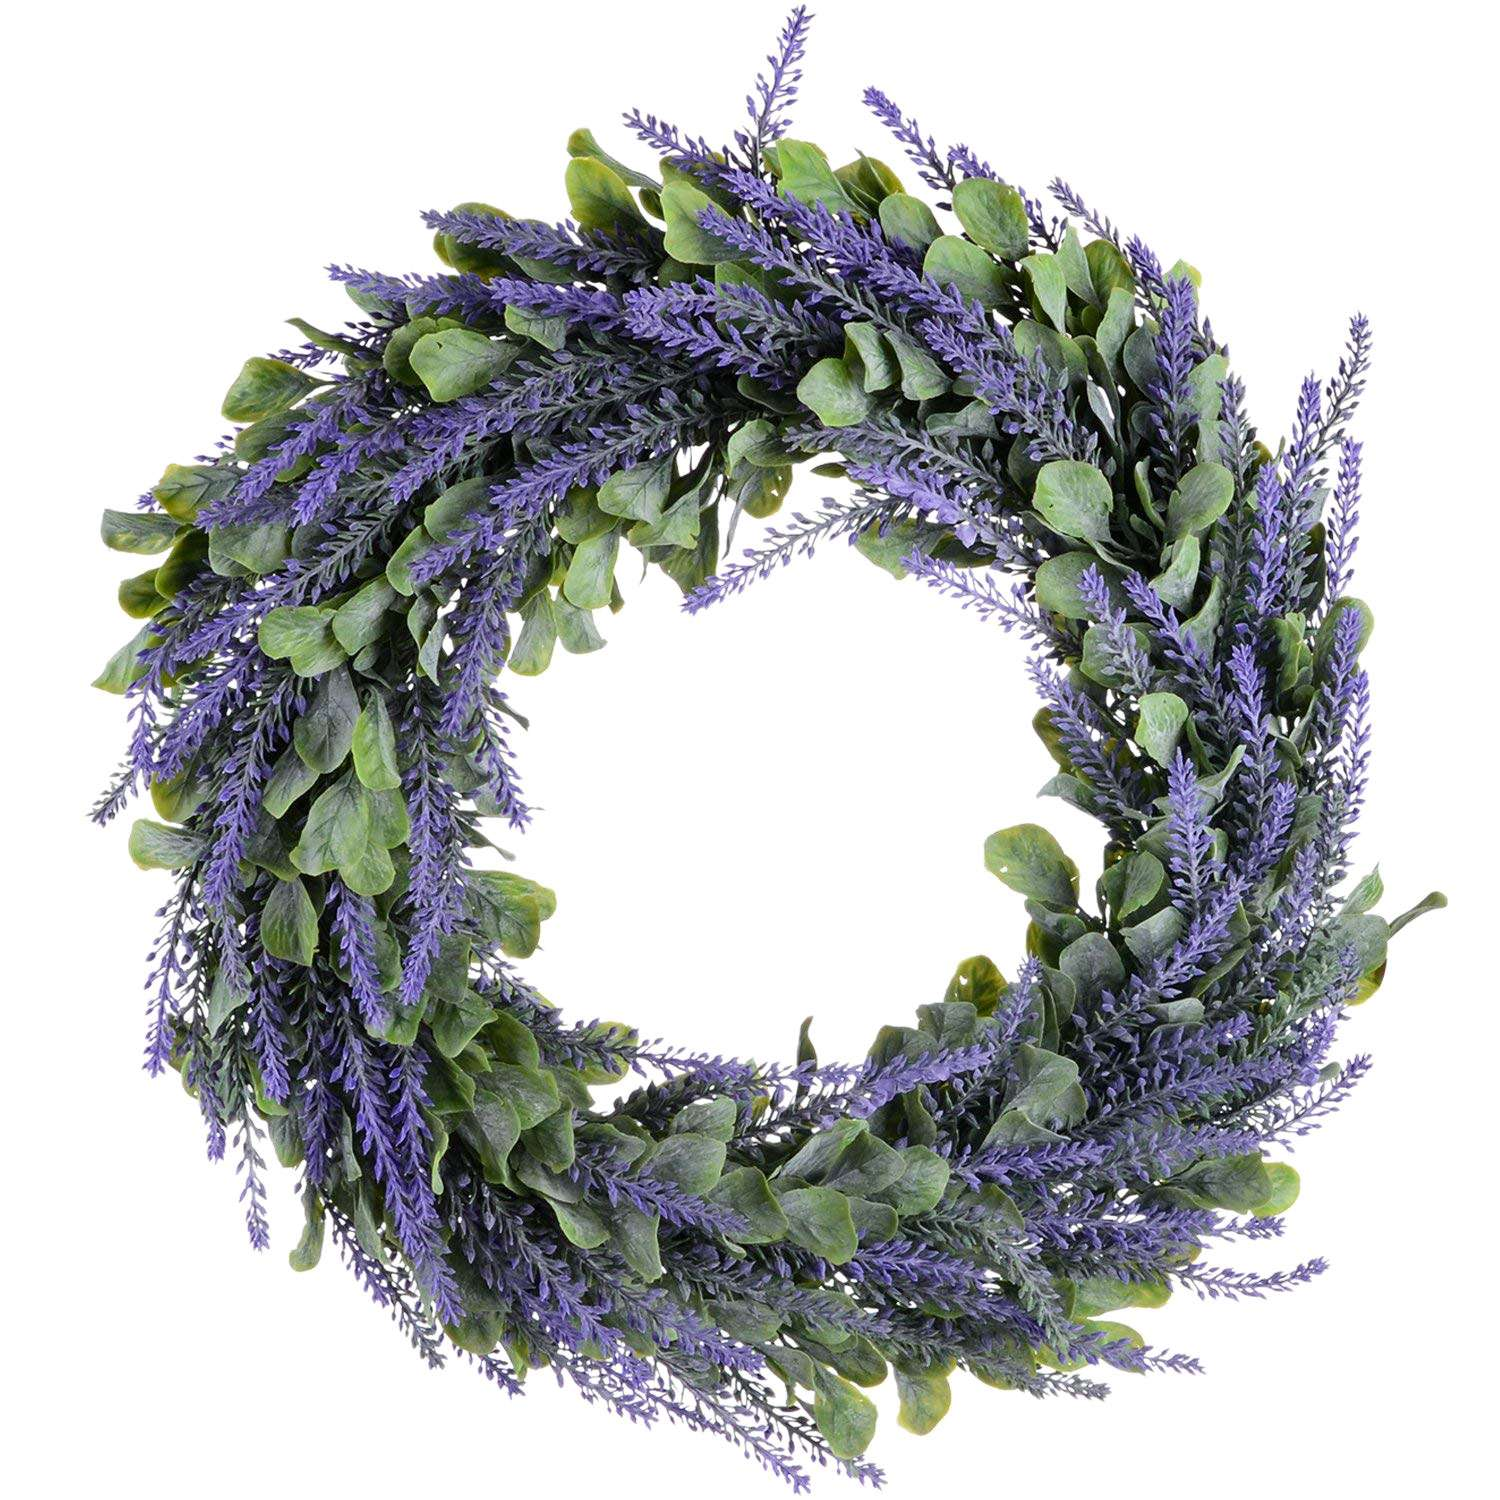 Artificial Wreath, Door Wreath 17 Inch Lavender Spring Wreath Round Wreath for The Front Door, Home DecorArtificial Wreath, Door Wreath 17 Inch Lavender Spring Wreath Round Wreath for The Front Door, Home Decor